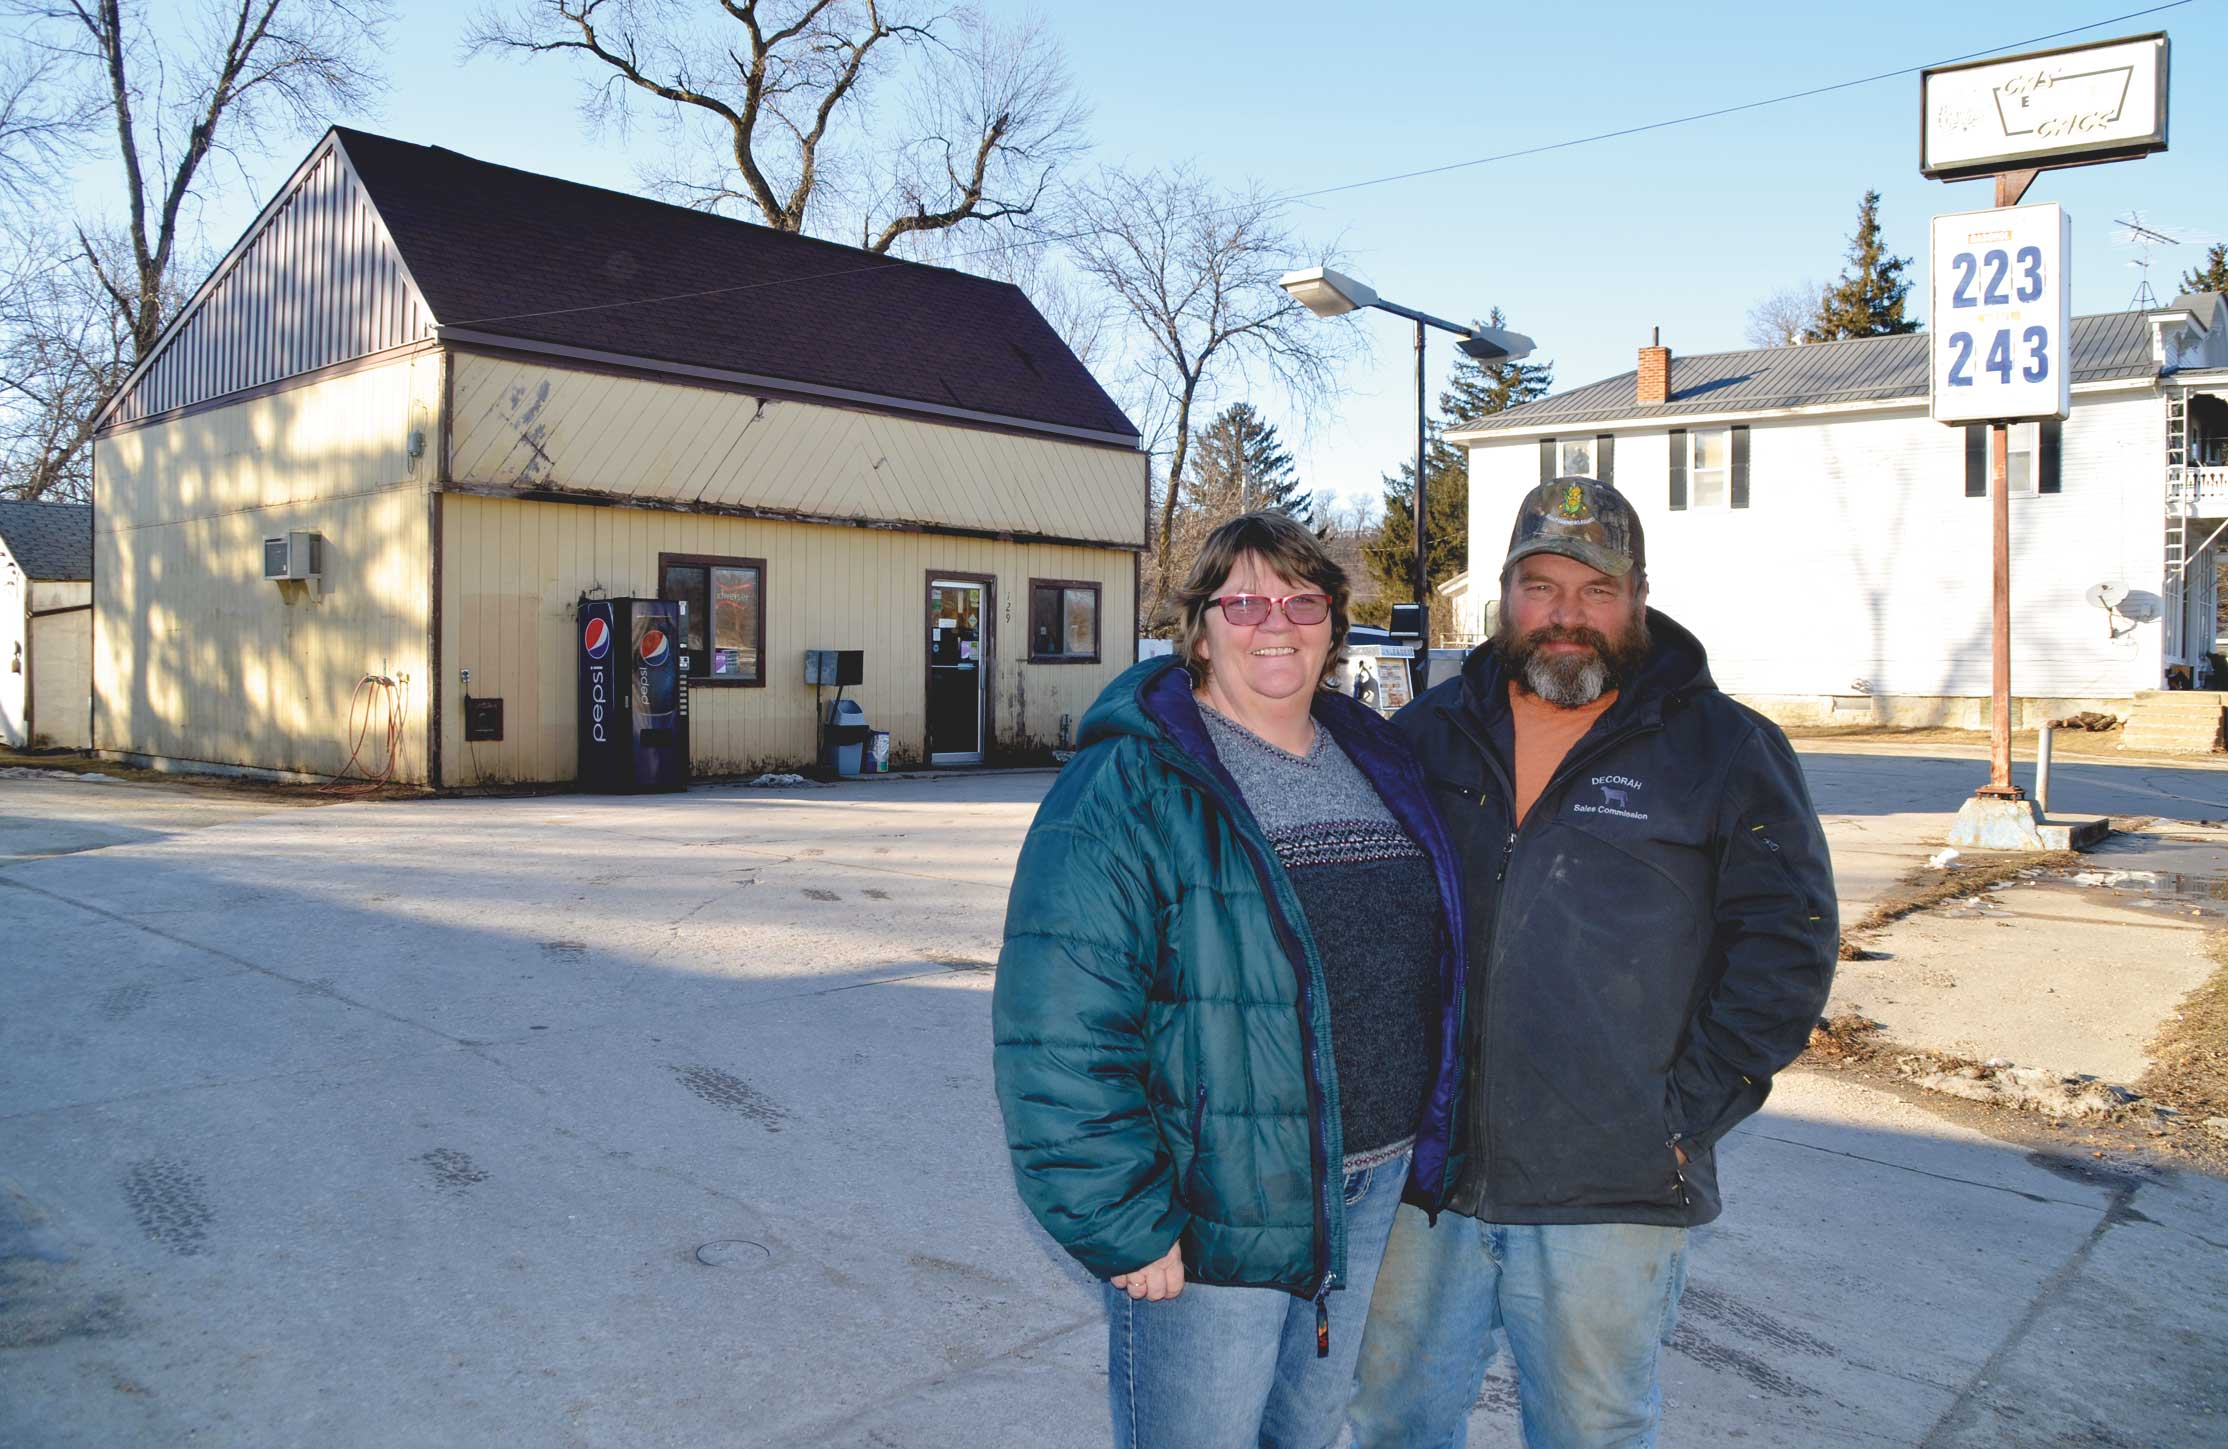 SueAnne and Bob Opperman (l-r) recently purchased Charley's Gas Gage in Wadena from Charley Daisy of Arlington. Daisy also sold his Arlington and Volga locations to Zak Lefs of Waverly.  Chris DeBack photo 	Oppermans buy Charley's Gas Gage ...